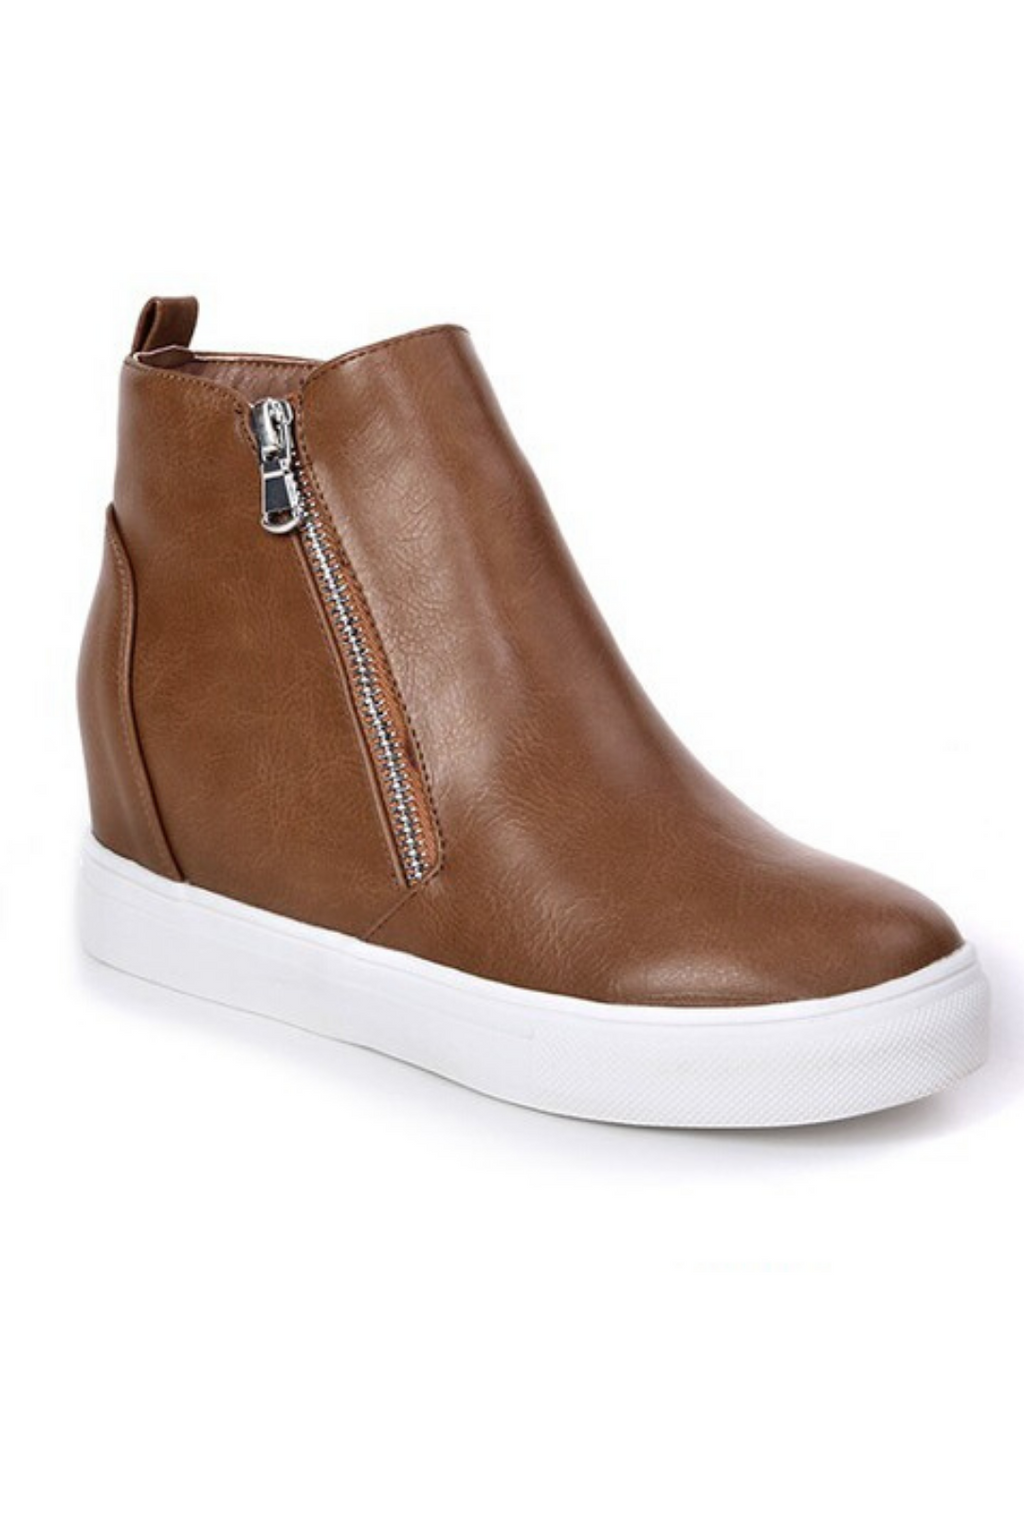 Malia Hidden Wedge Sneakers